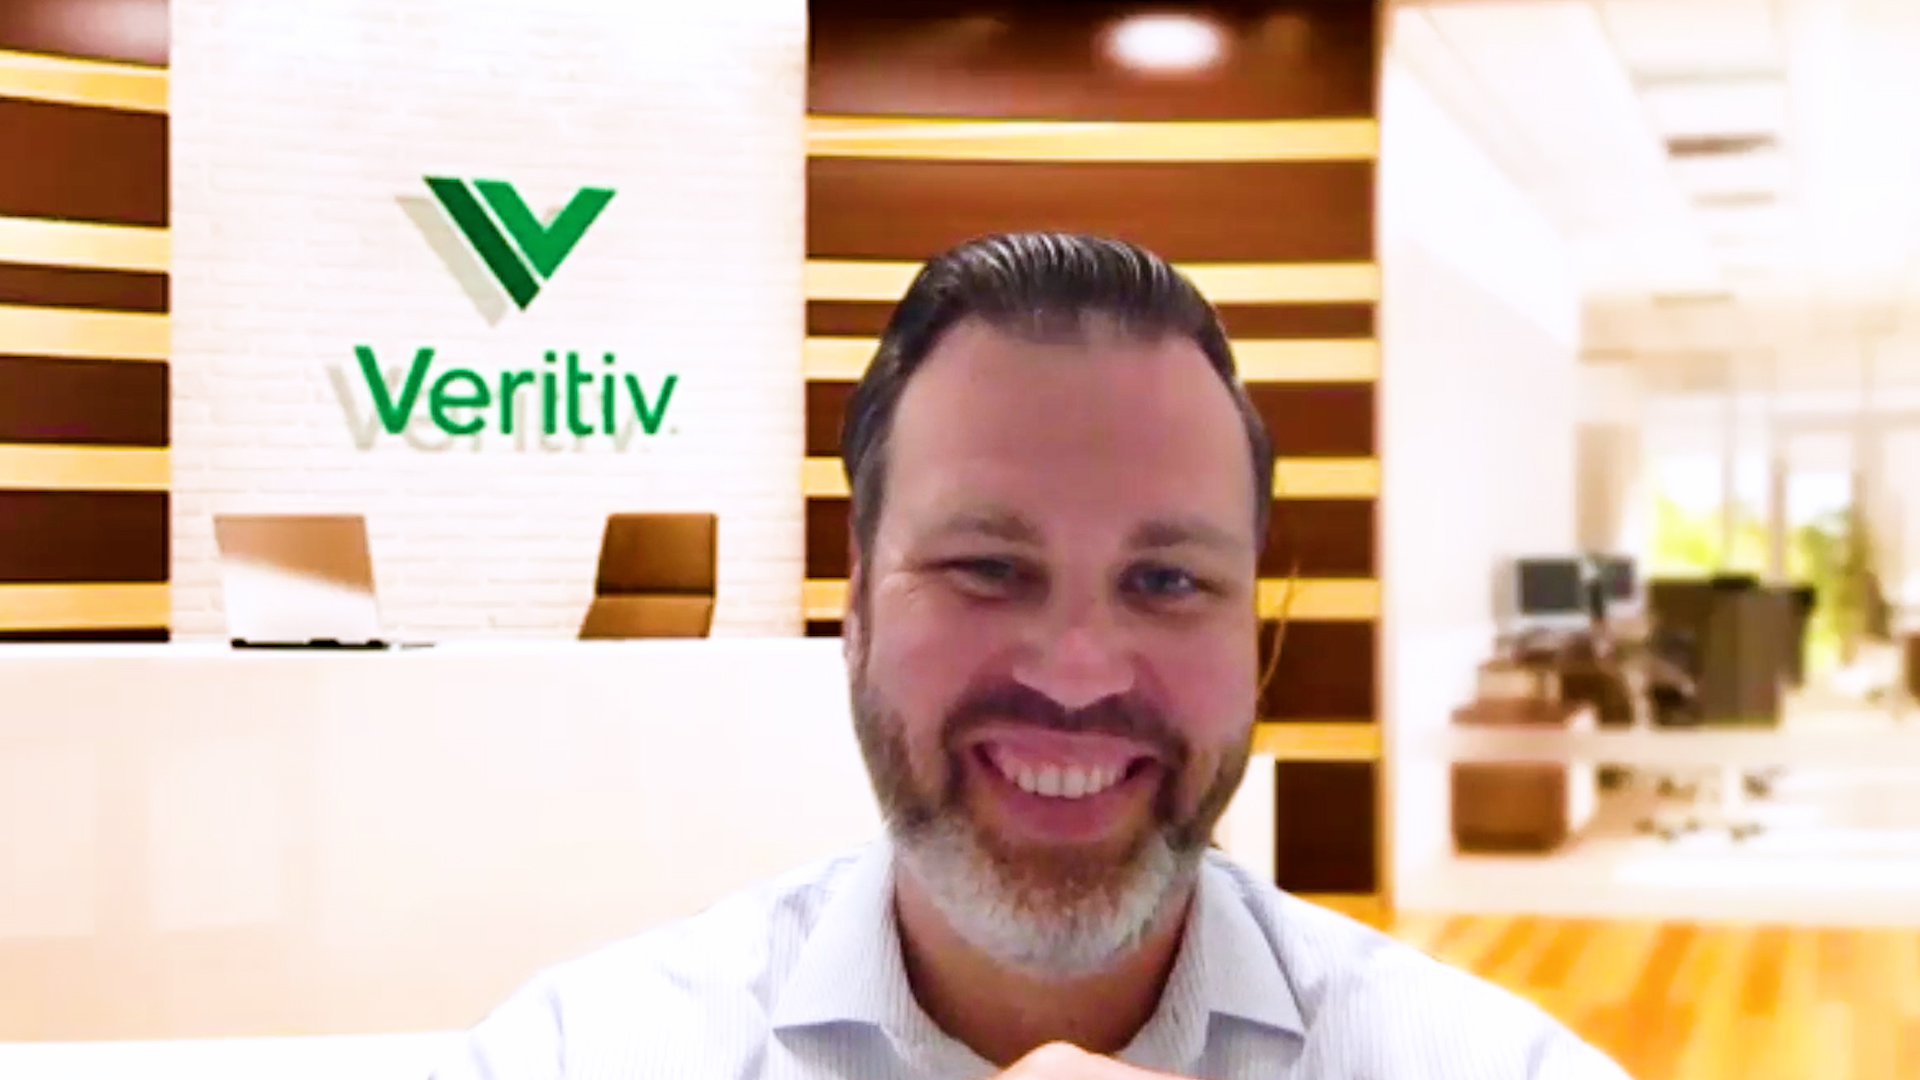 Matt Reddington Introduces Veritiv Vine (Part 2)